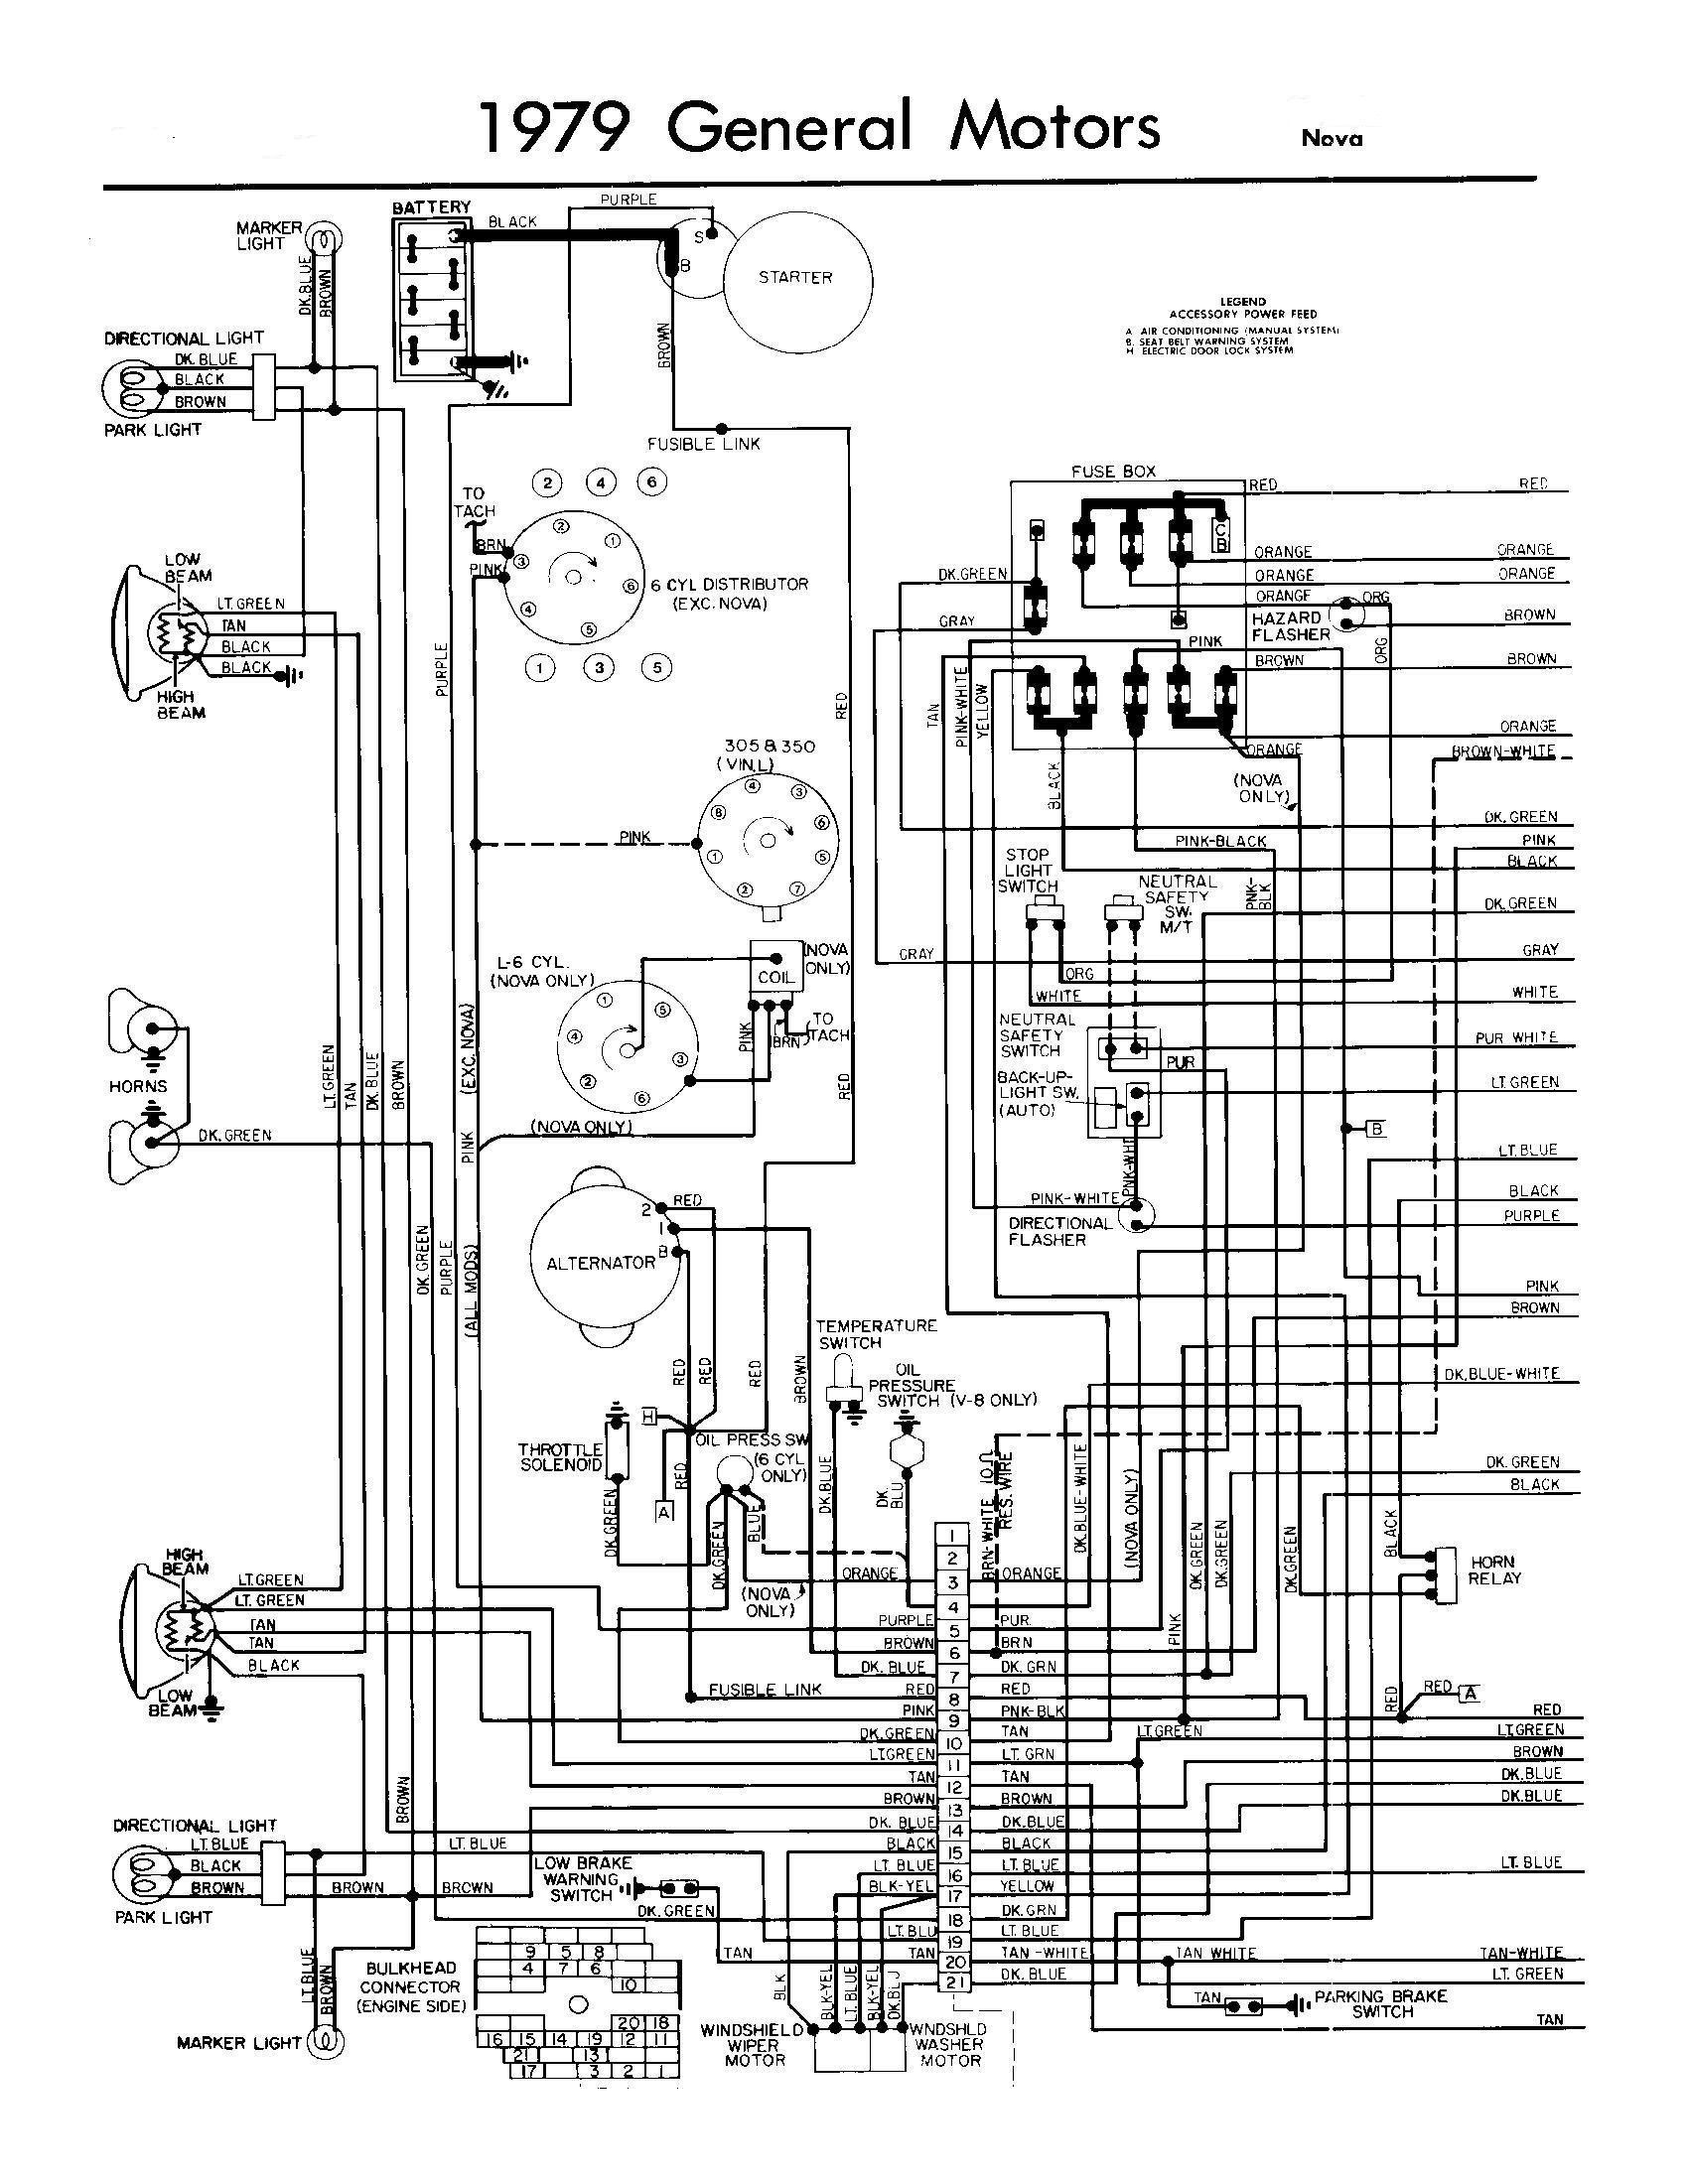 chevy nova wiring diagram fuse box wiring diagram chevy s10 wiring rh marstudios co 1972 Nova Wiring Diagrams Automotive 1972 Nova Wiring Diagrams Automotive